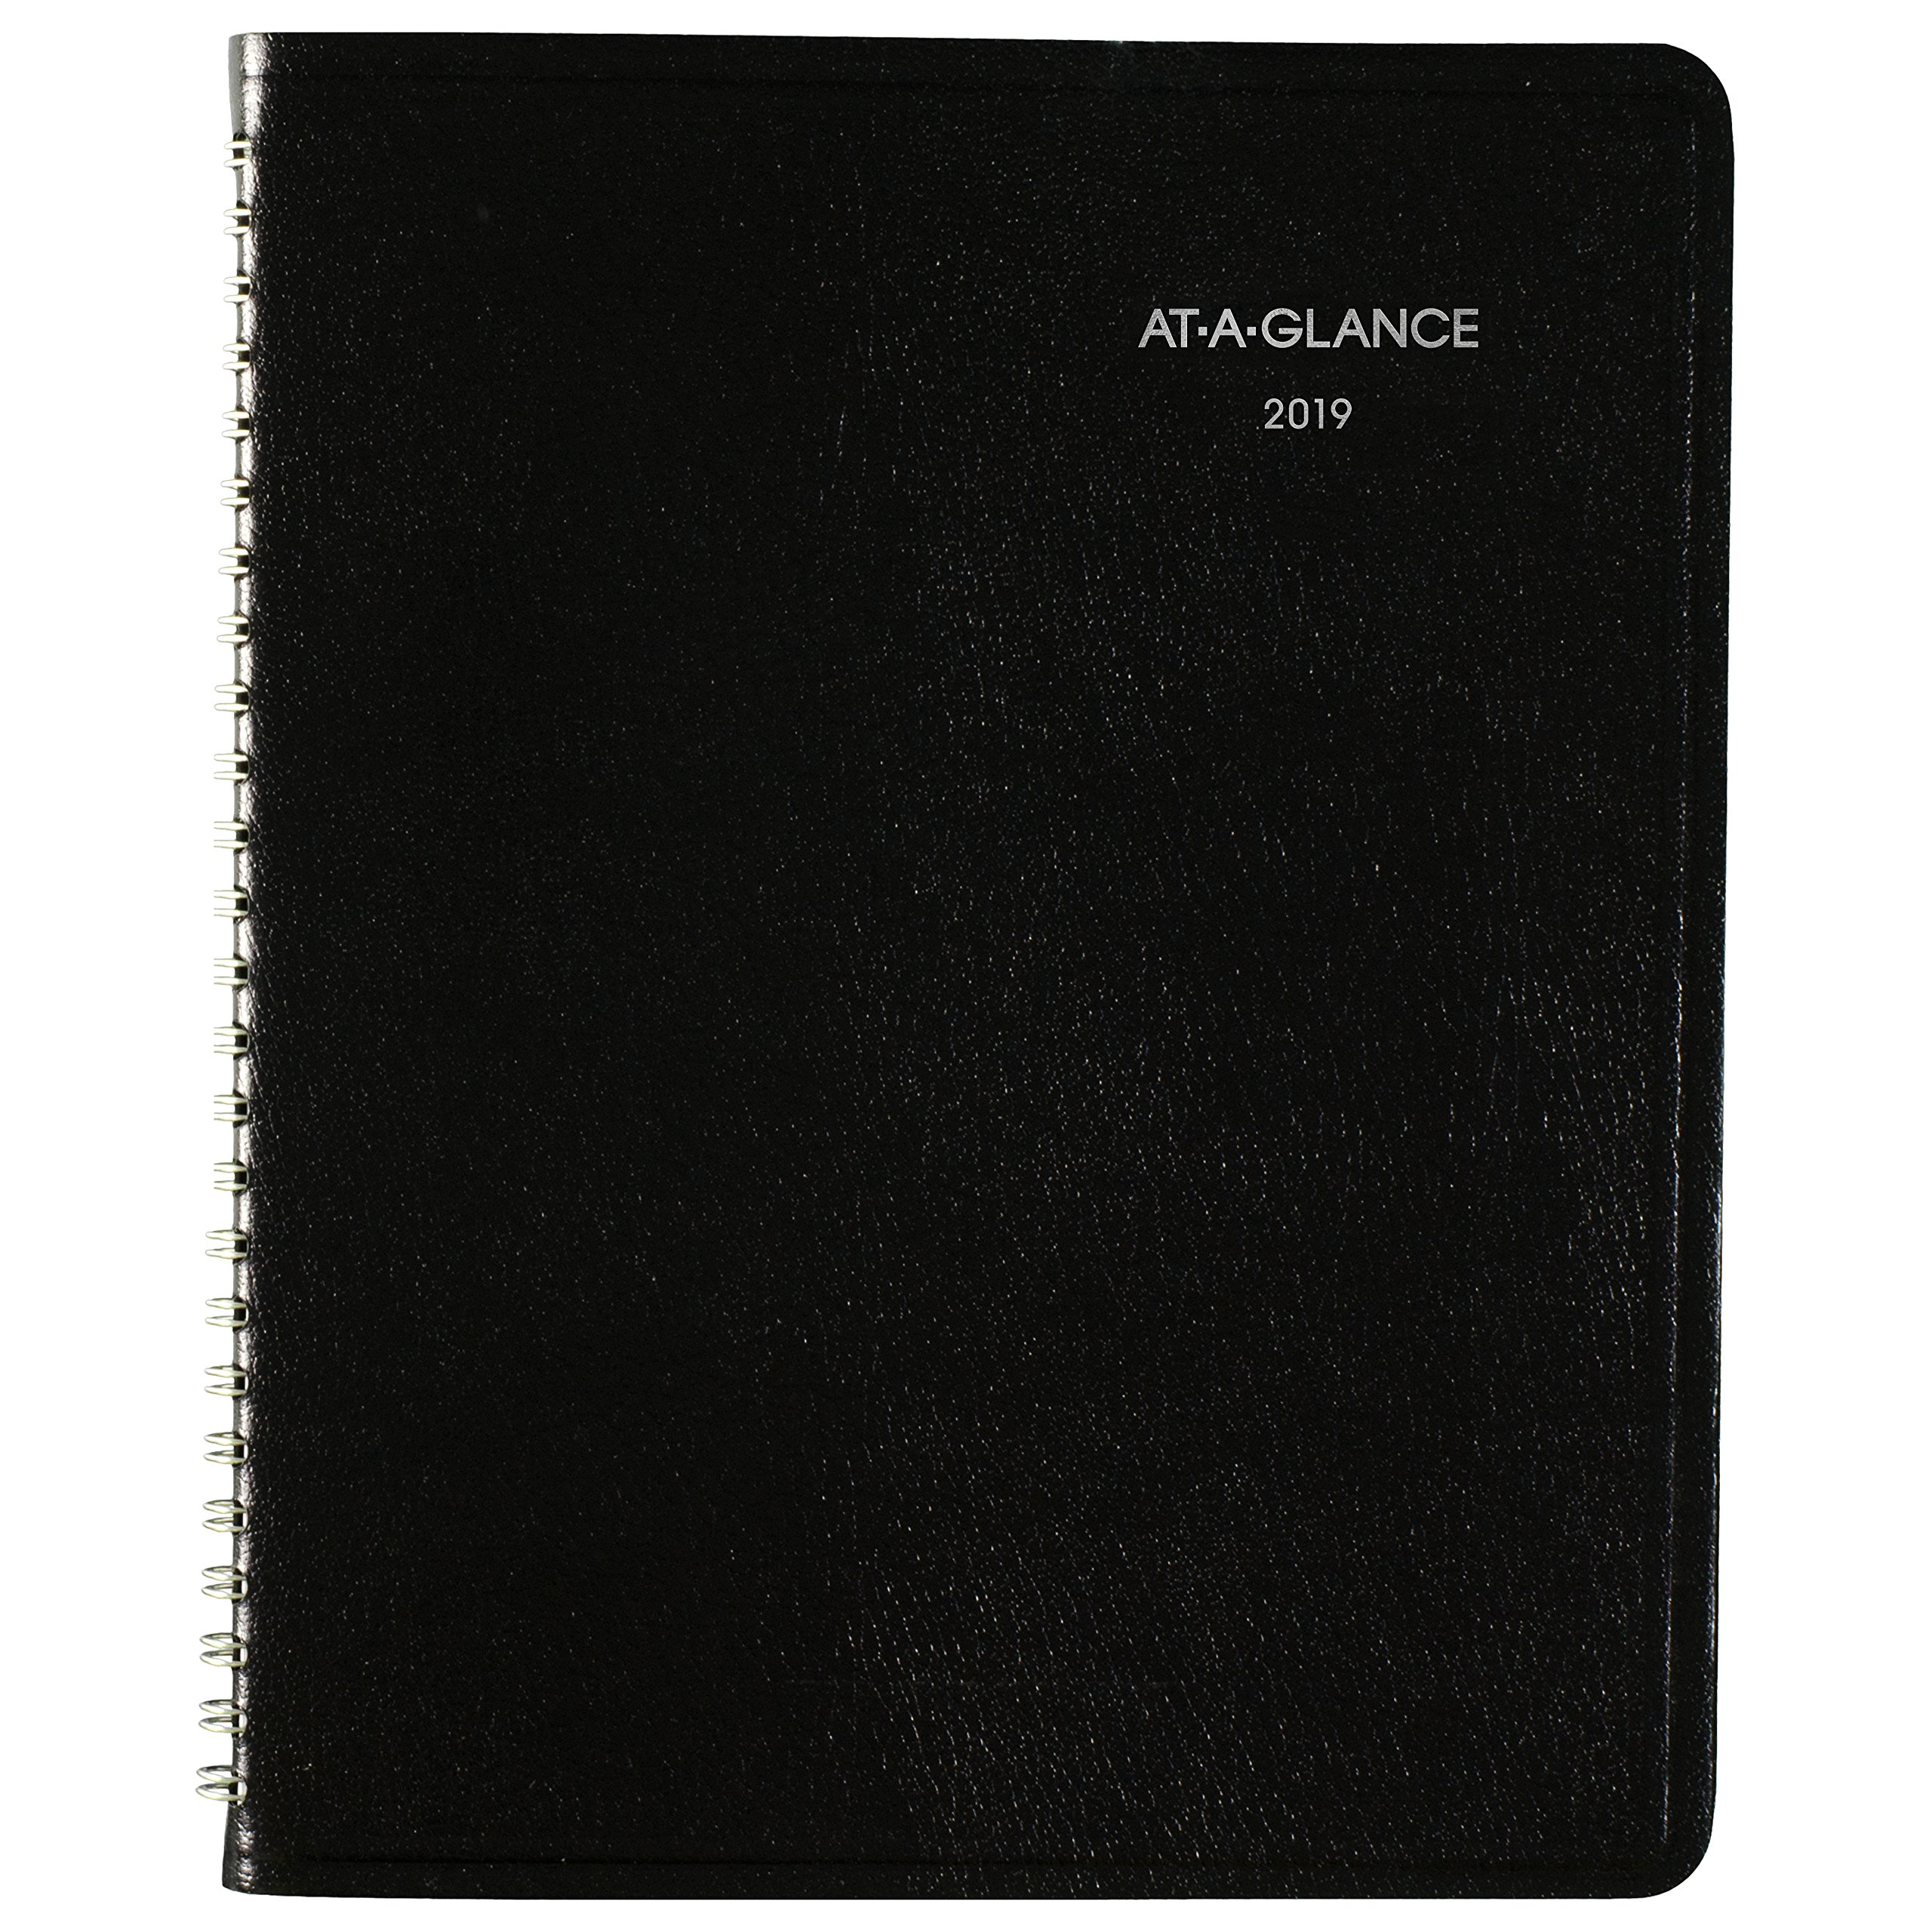 AT-A-GLANCE Weekly Planner, January 2019 - December 2019, DayMinder, Medium Size, Block Style, Black (G53500)